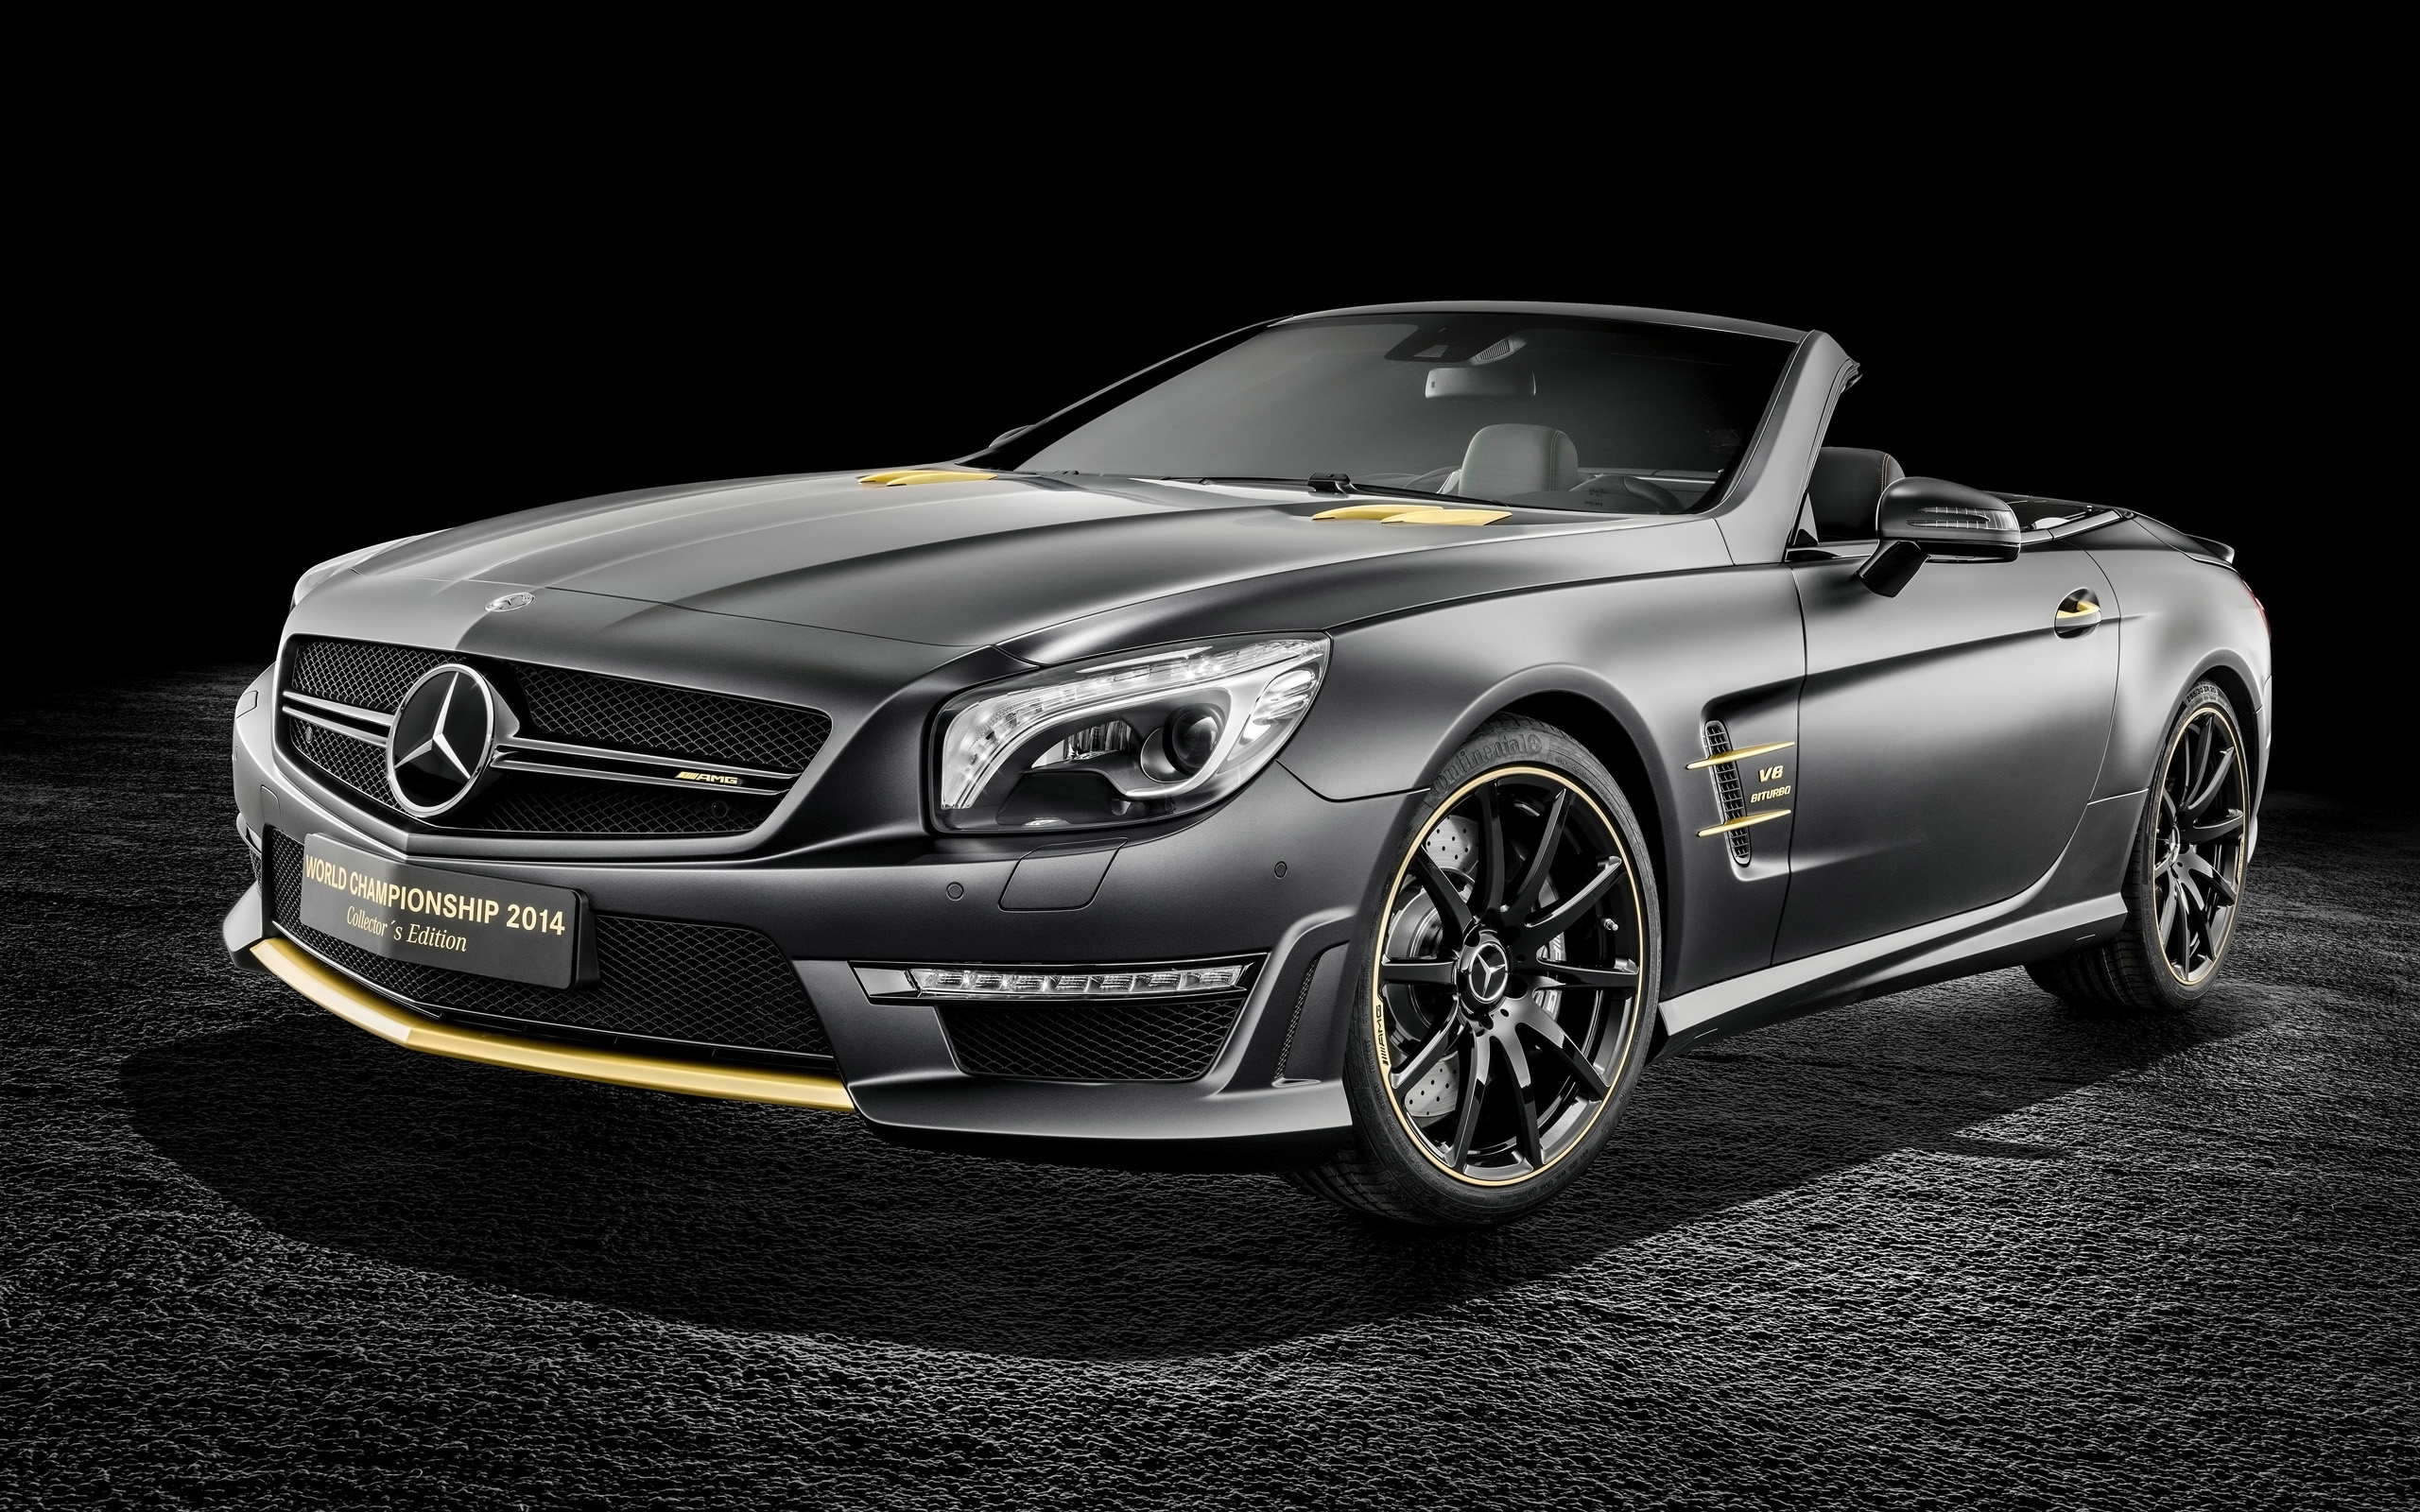 2015 mercedes benz sl 63 amg world championship wallpaper hd car wallpapers. Black Bedroom Furniture Sets. Home Design Ideas